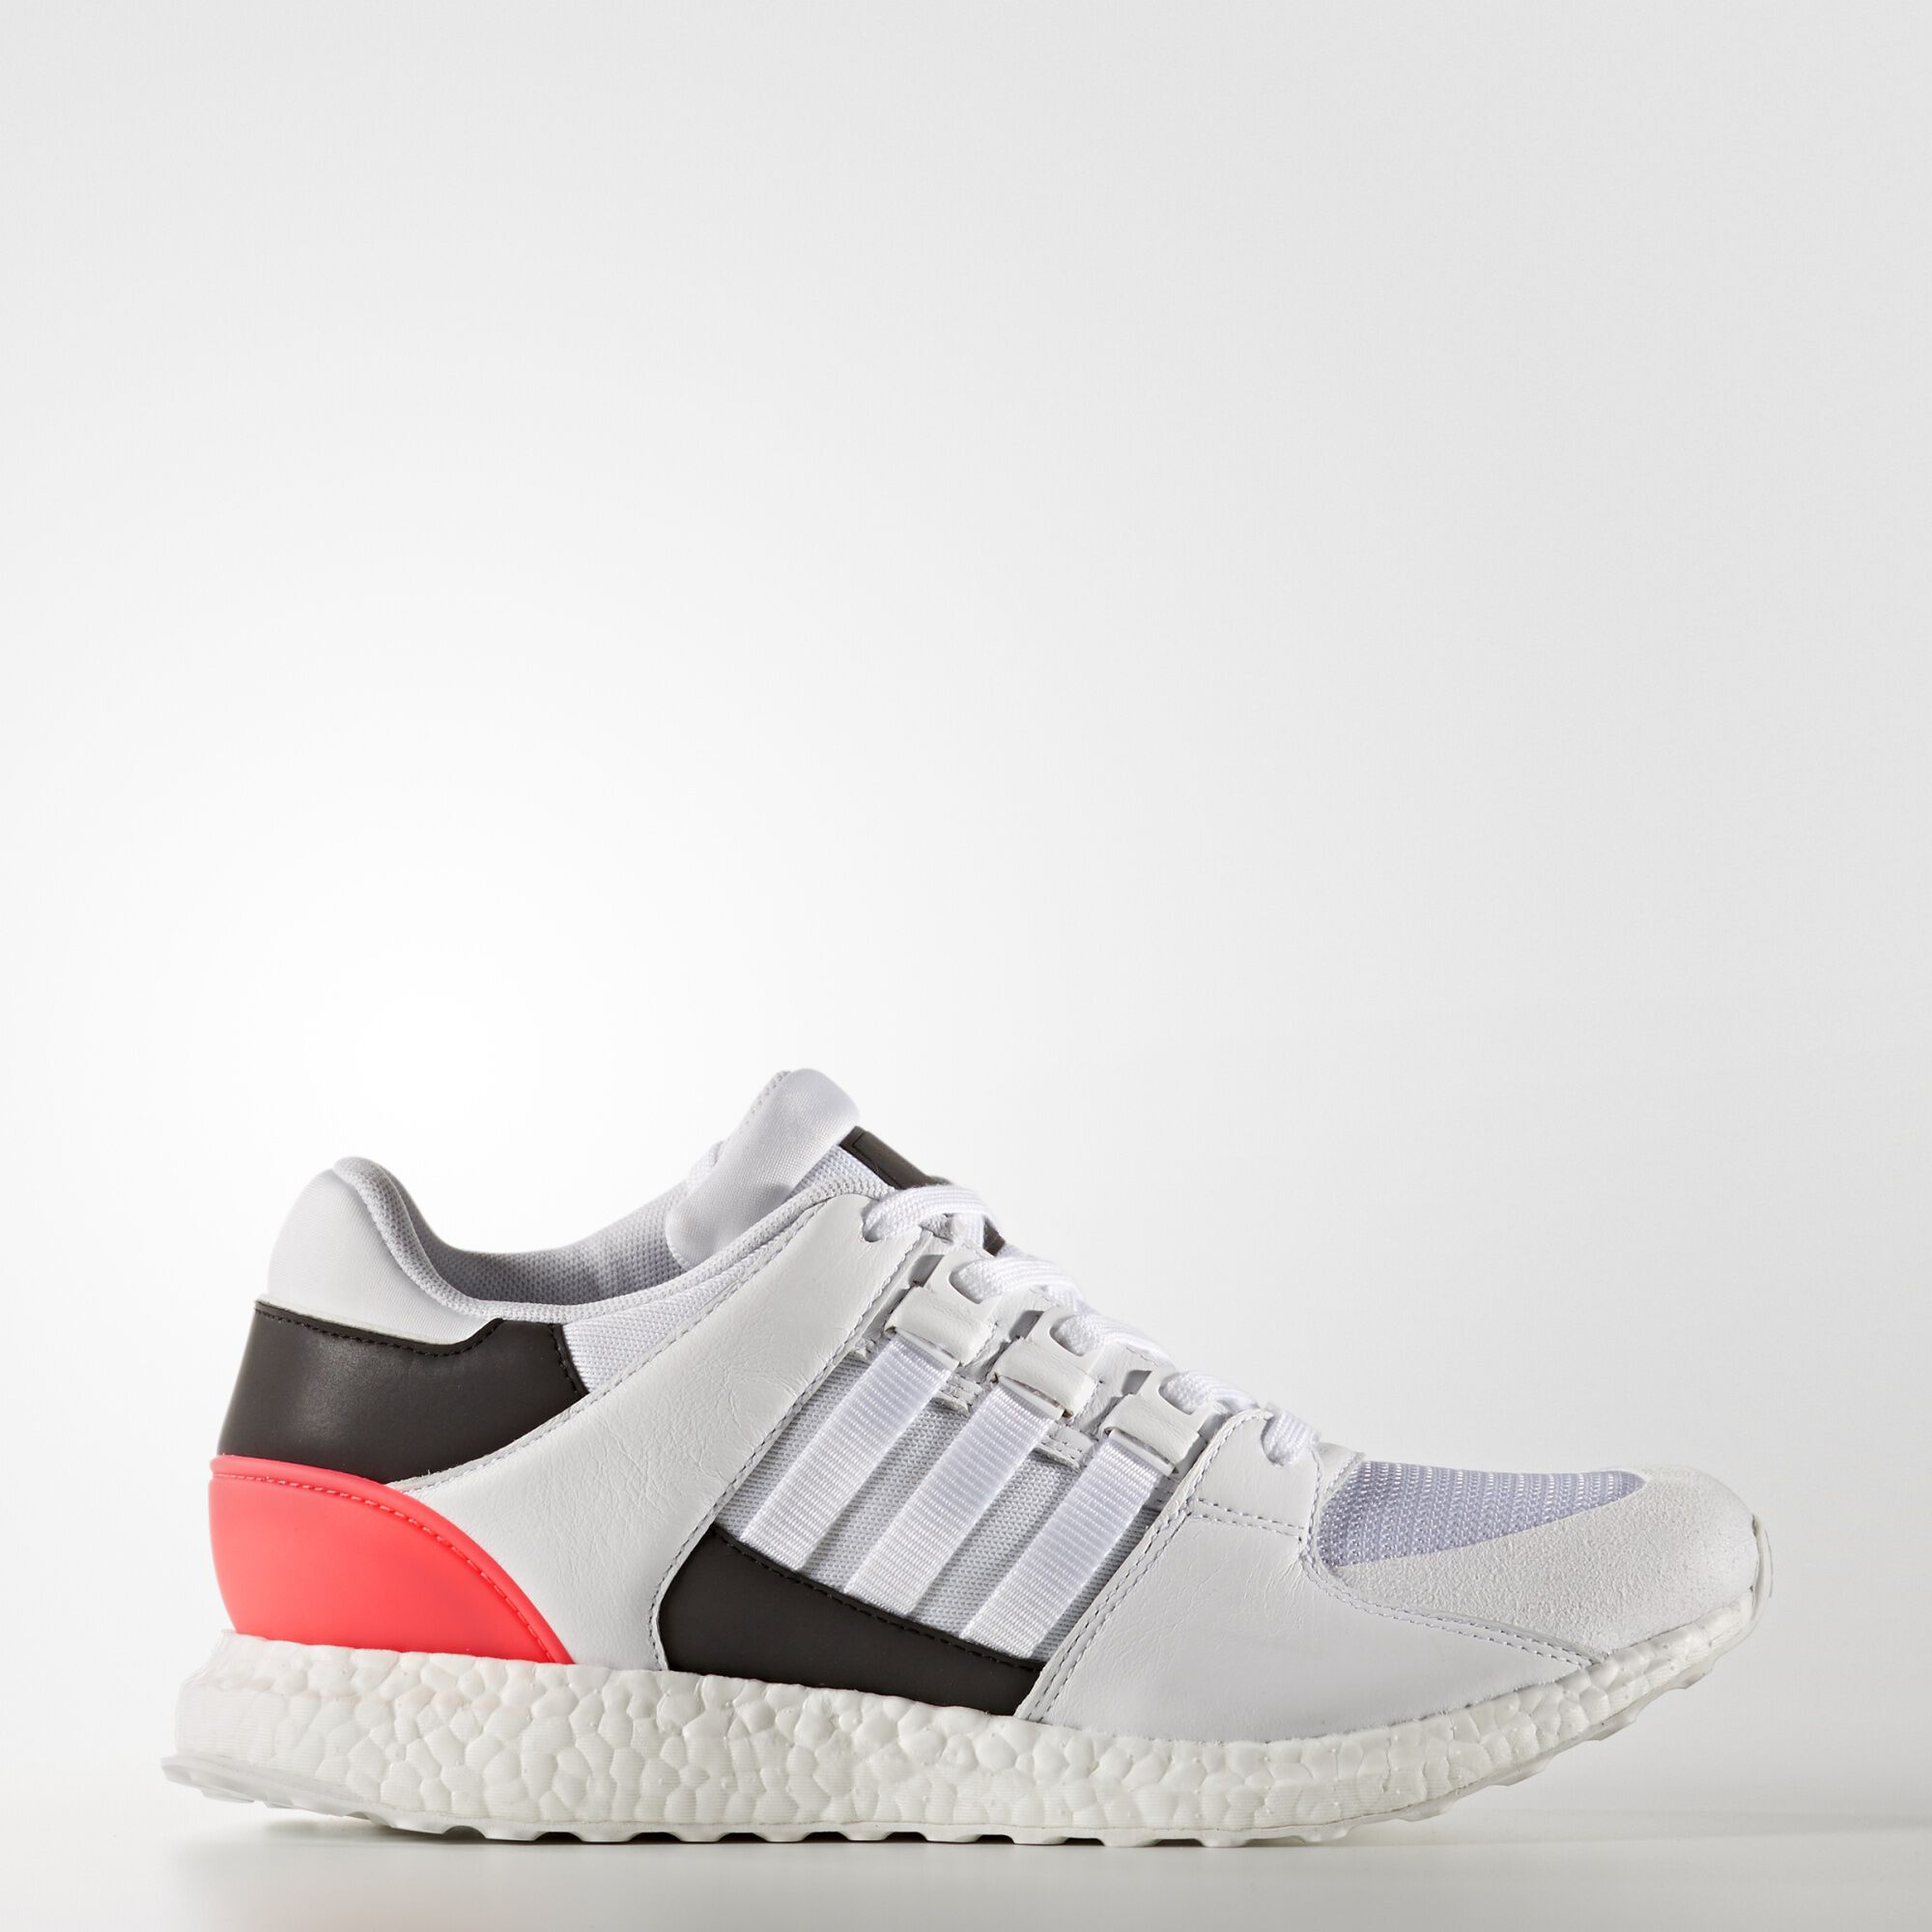 Adidas EQT Support RF Core Black Turbo Cheap Adidas EQT Support